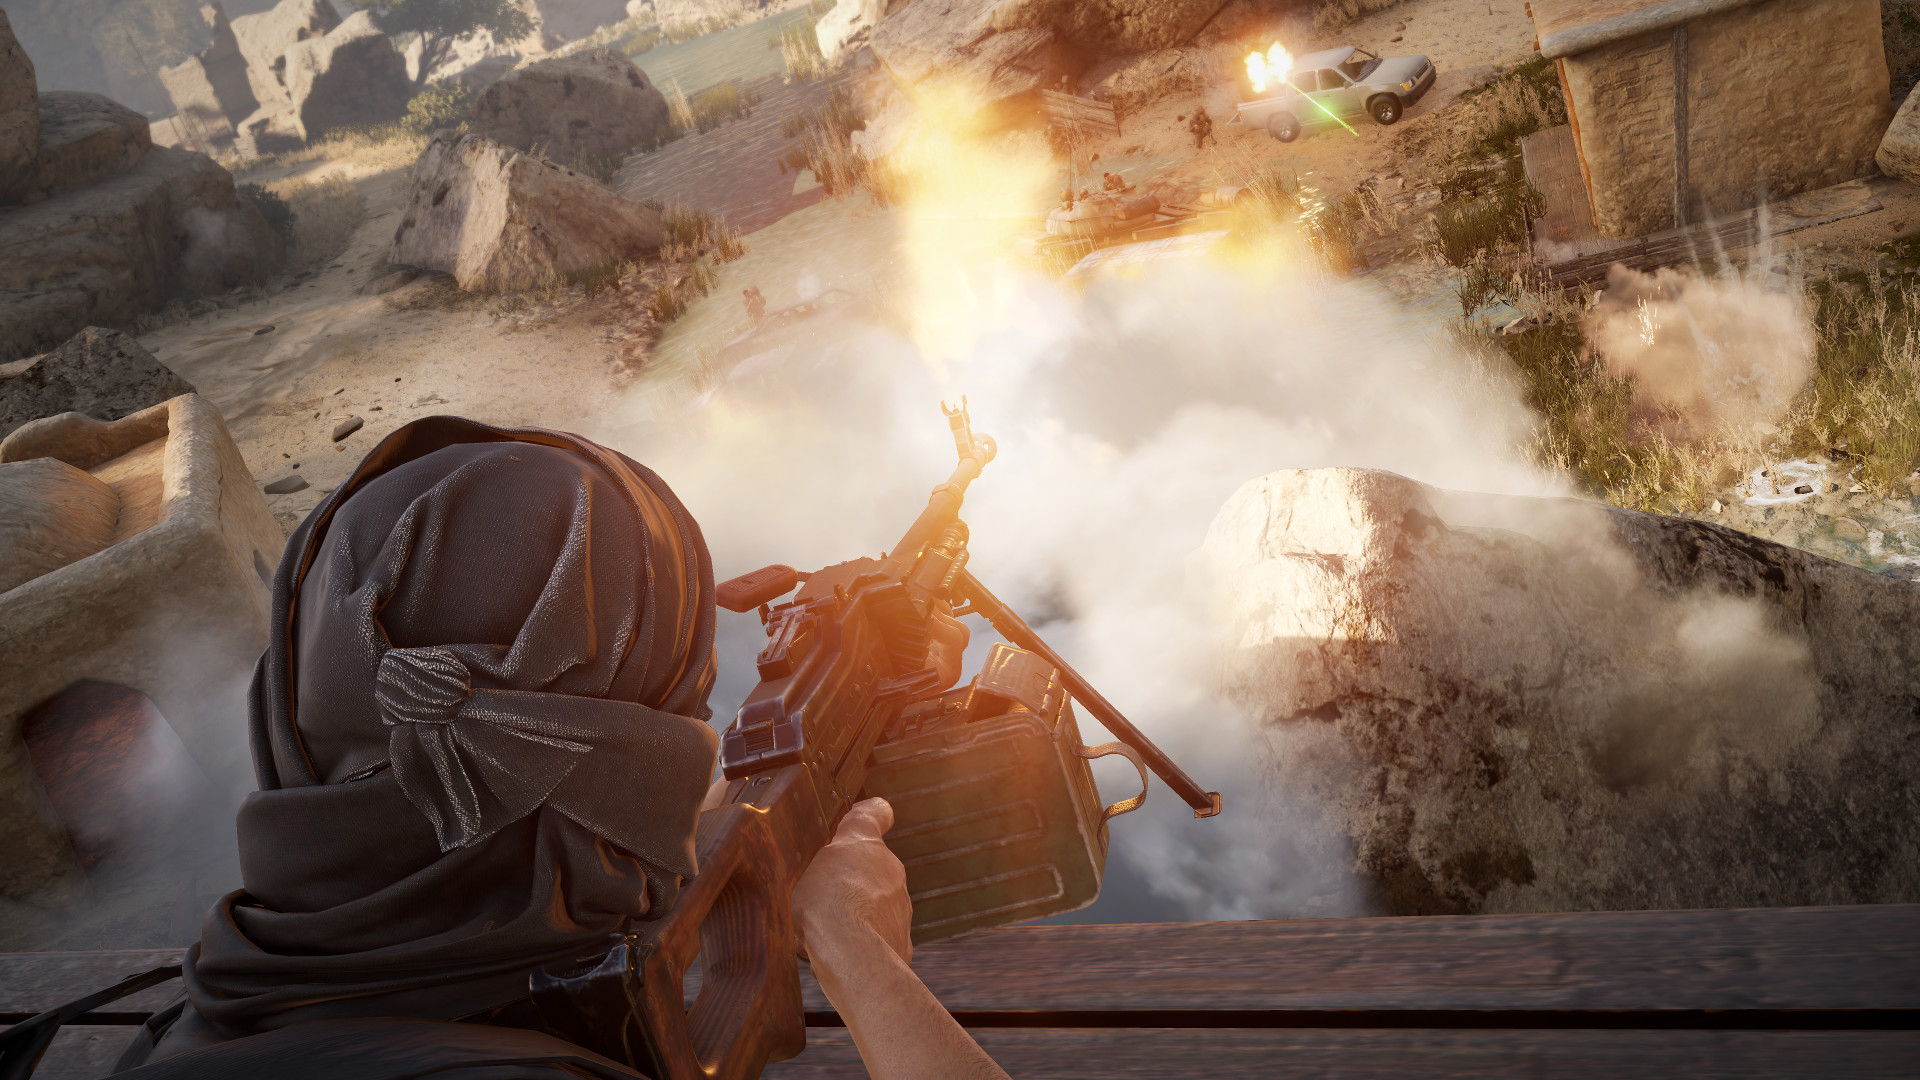 Insurgency: Sandstorm's First Major Content Release Available Now    Player.One